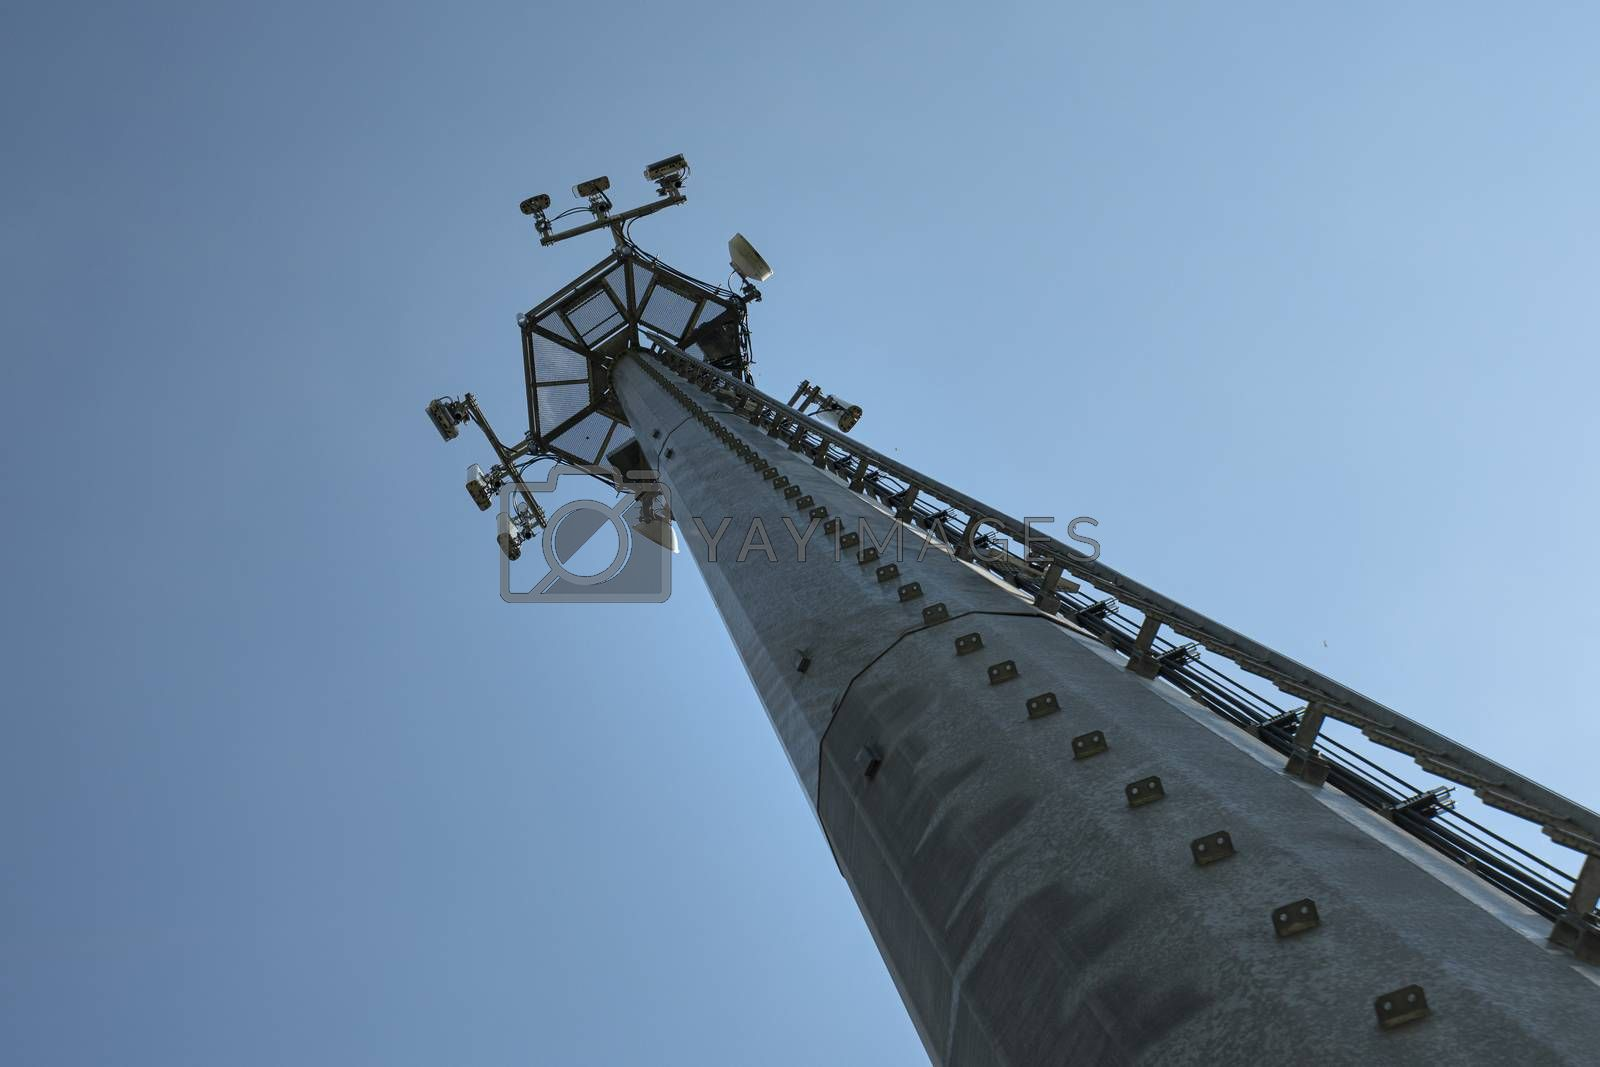 bottom view of a metal pylon with cell phone antennas